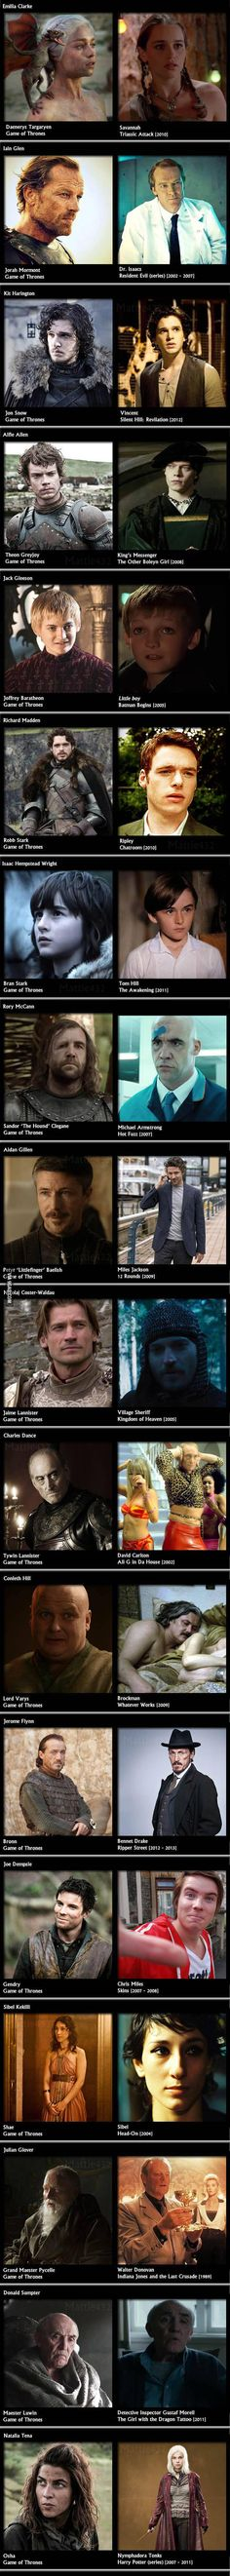 Game of Thrones Cast Other Roles